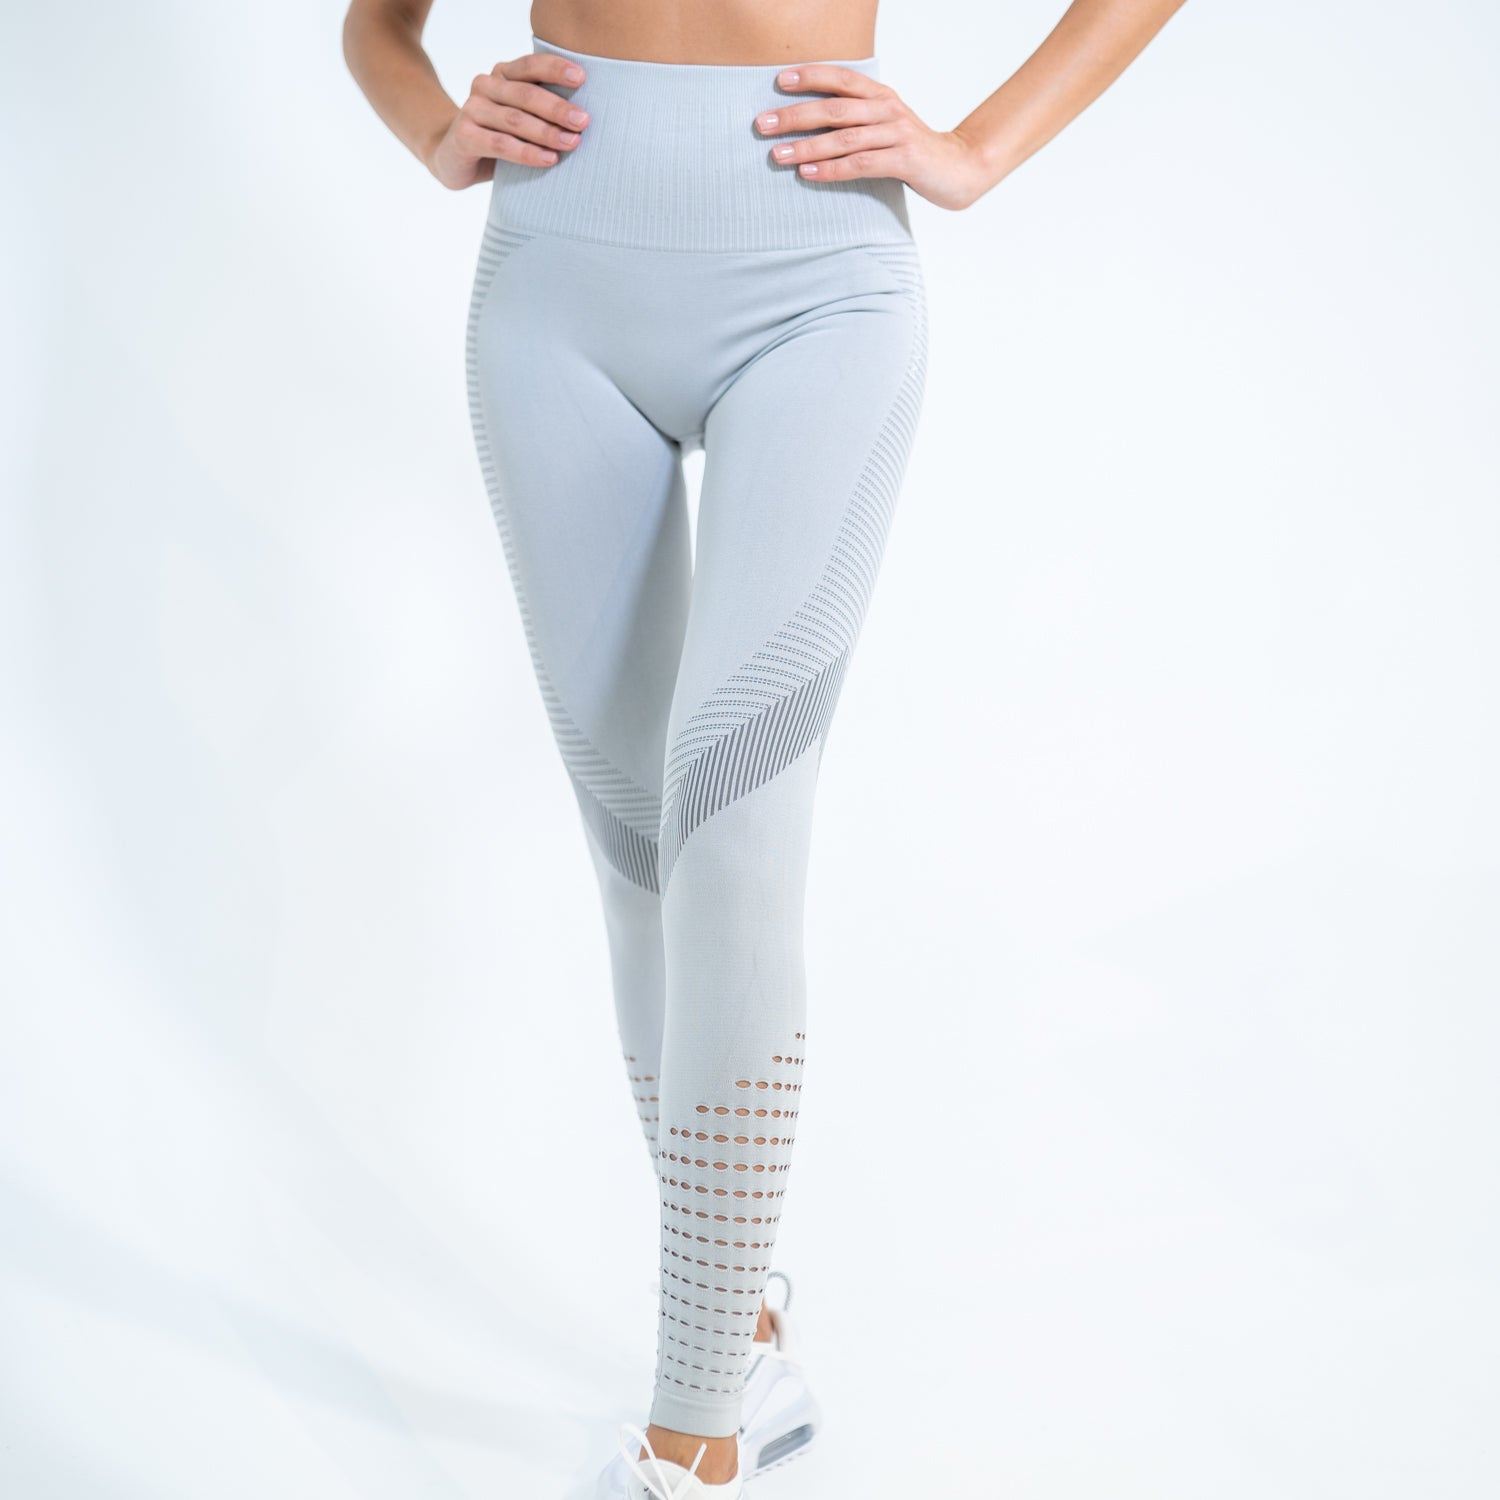 LEGGING MICROTECH 2.0 - GREY